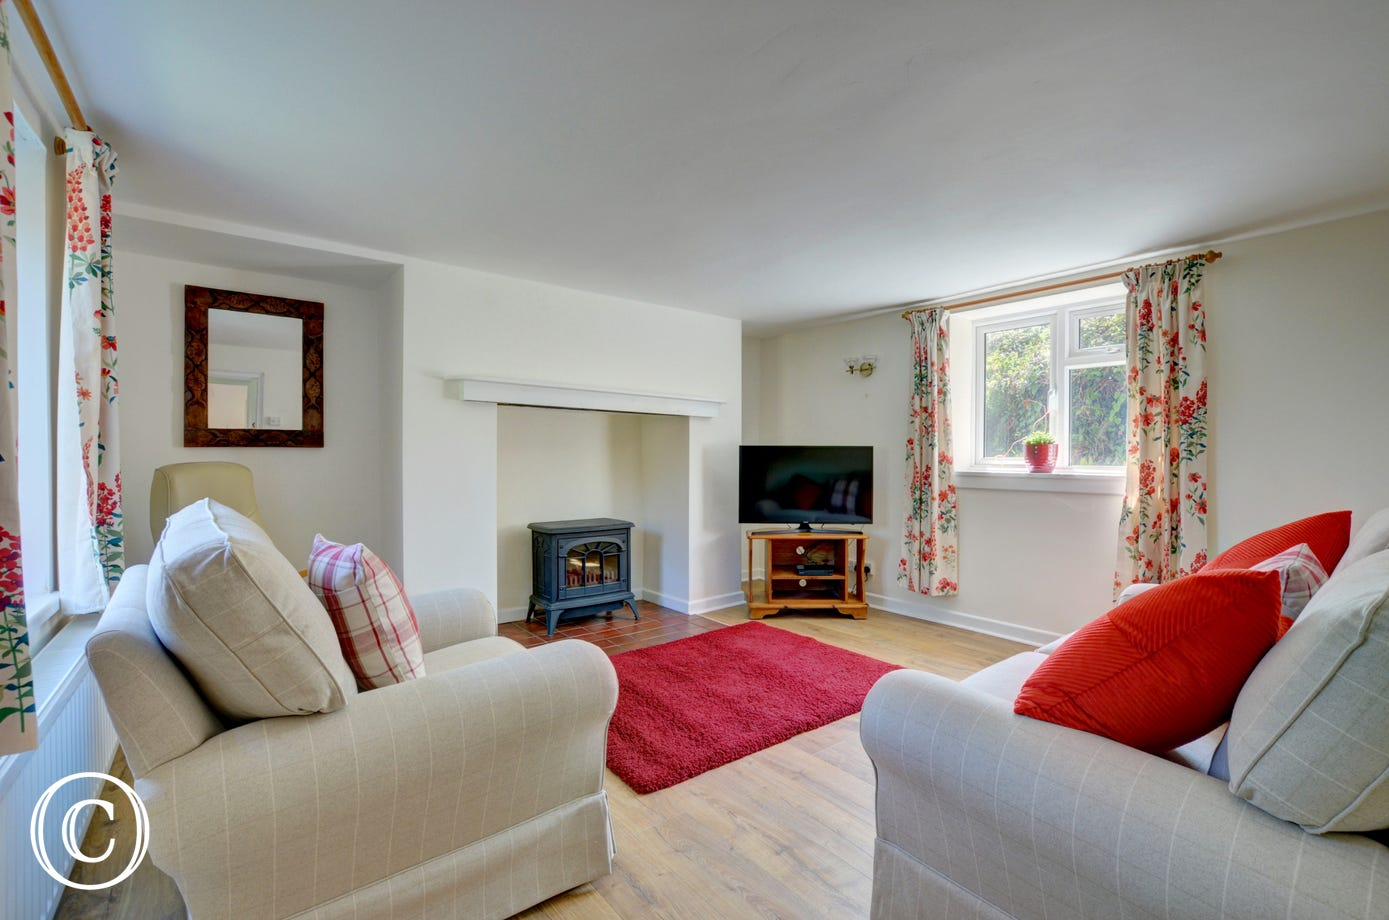 The living room has comfy seating in front of a gas effect woodburner and smart TV